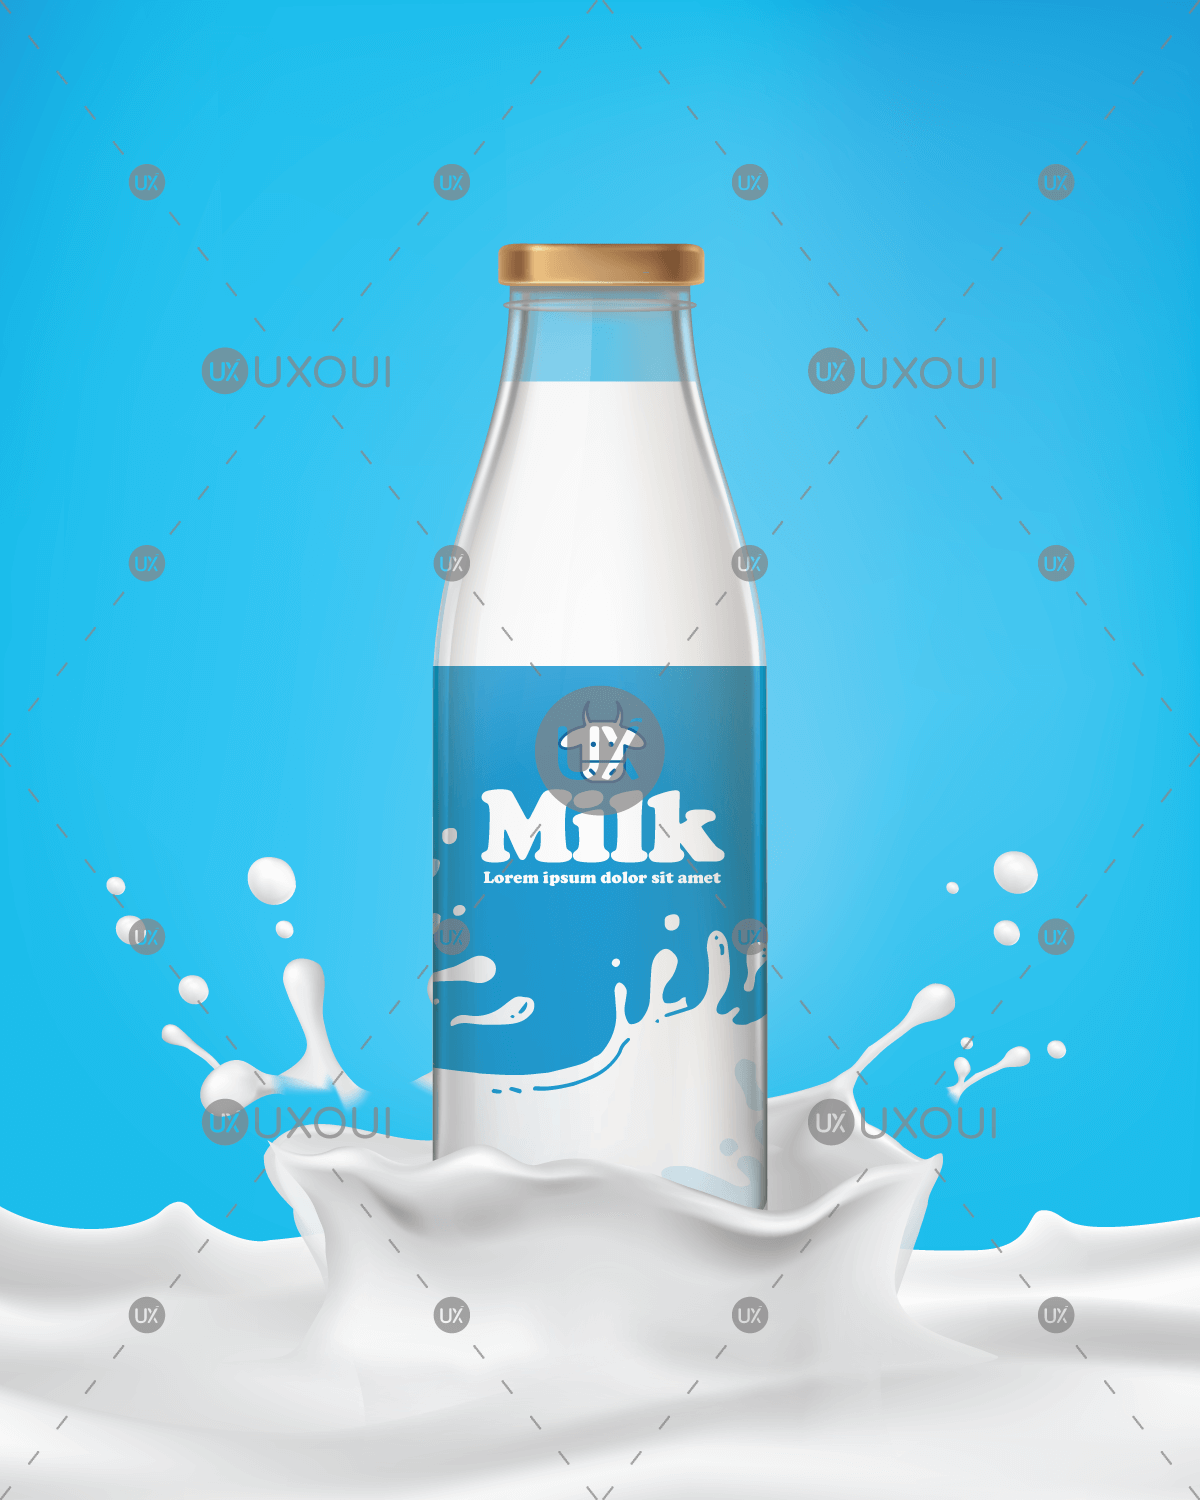 Milk Bottle Design Png - Milk glass bottle packaging and label design vector template ...